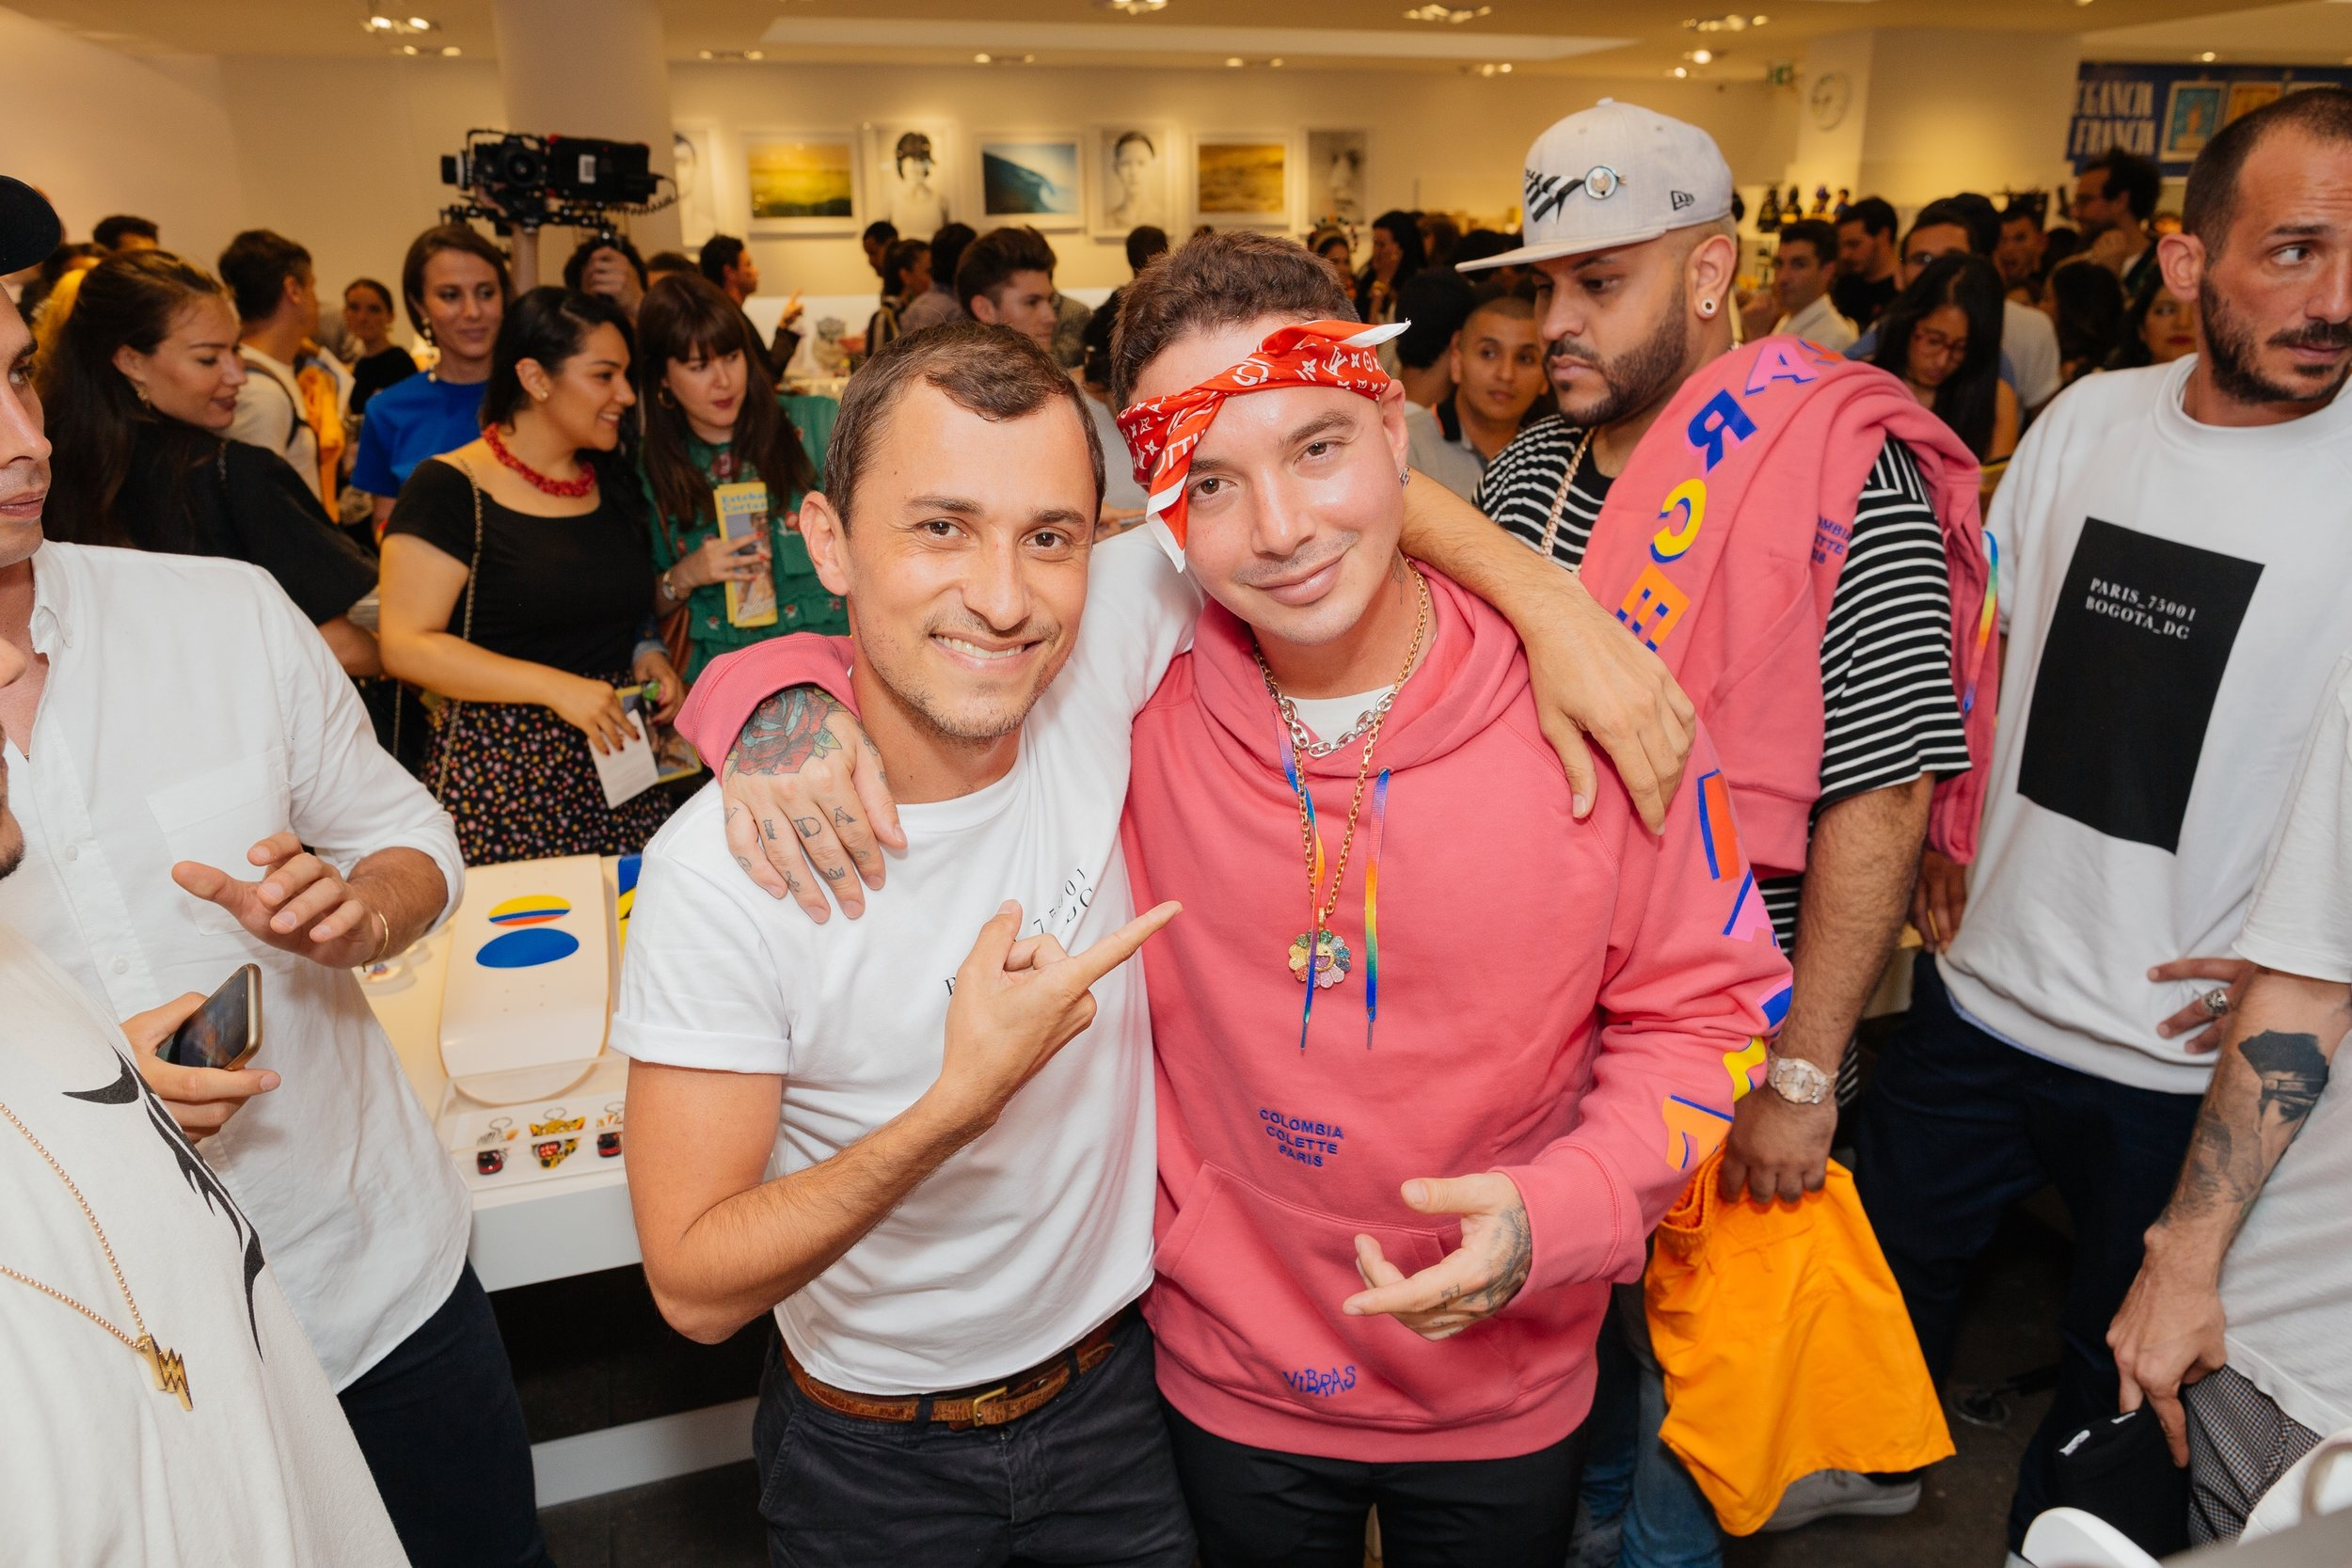 Esteban Cortazar pictured at the pop-up with Colombian reggaeton singer J Balvin.